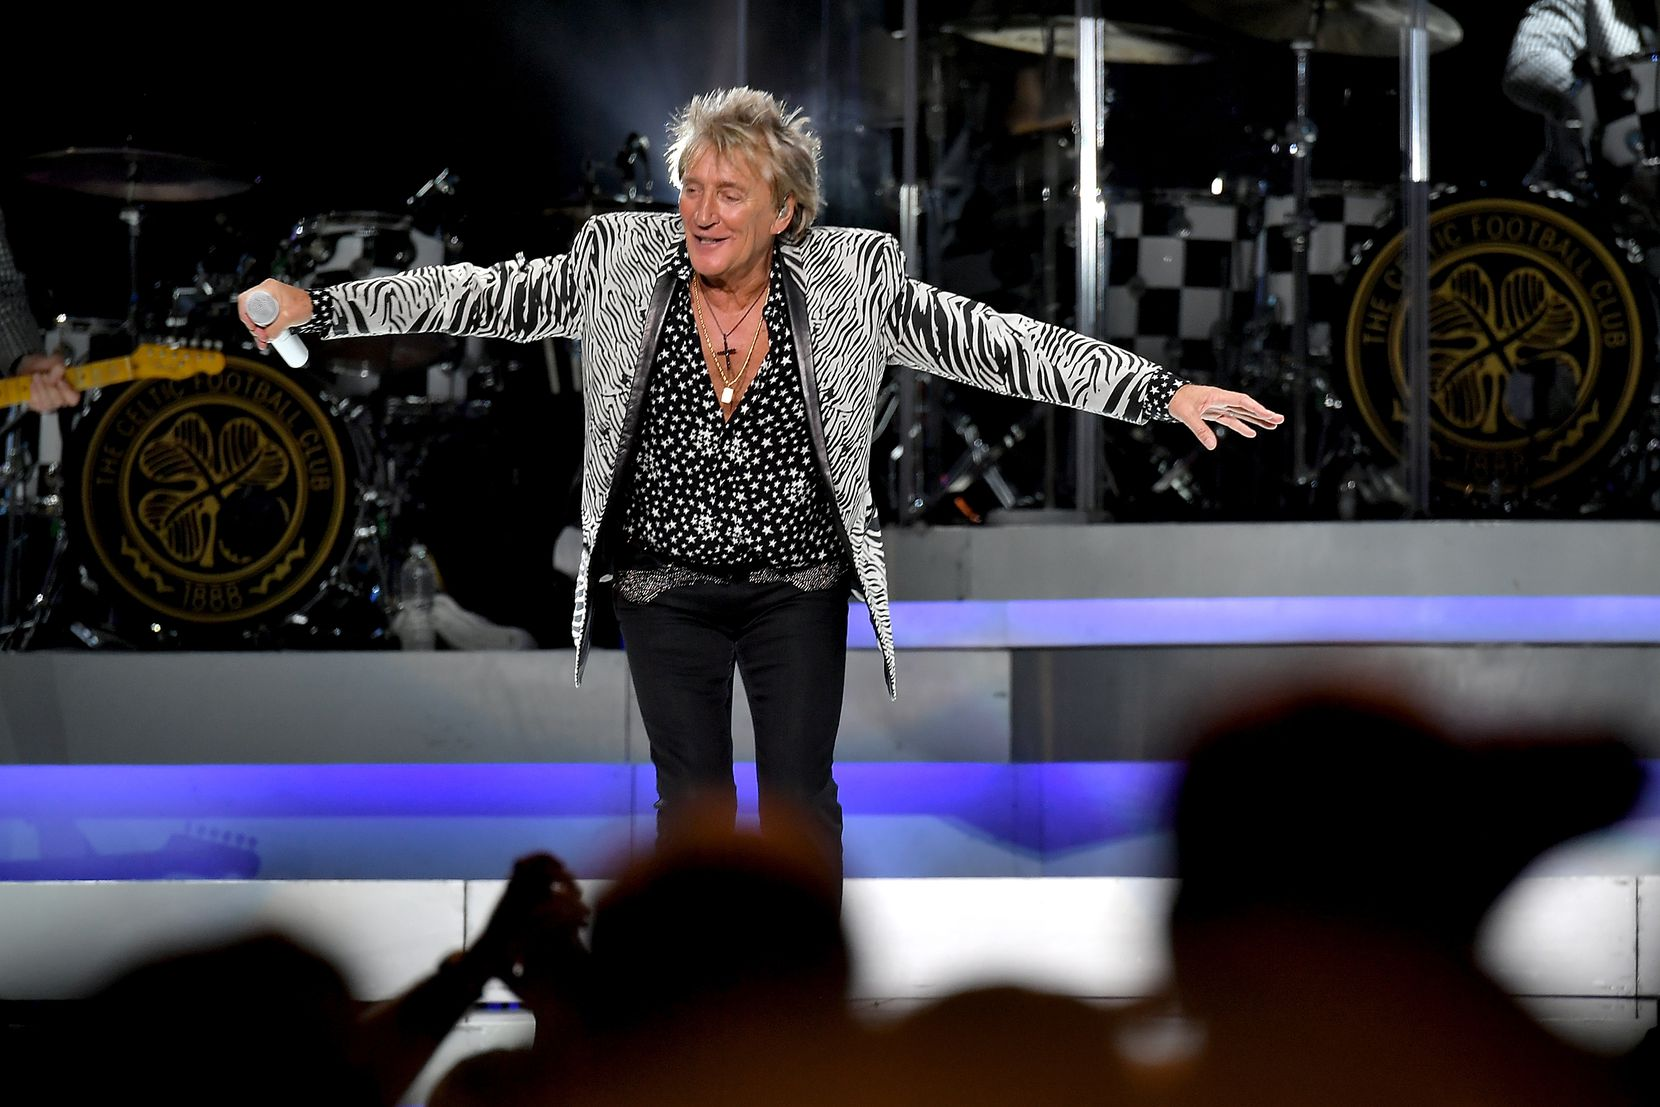 NEW YORK, NY - AUGUST 07: Rod Stewart performs at Madison Square Garden on August 7, 2018 in New York City.